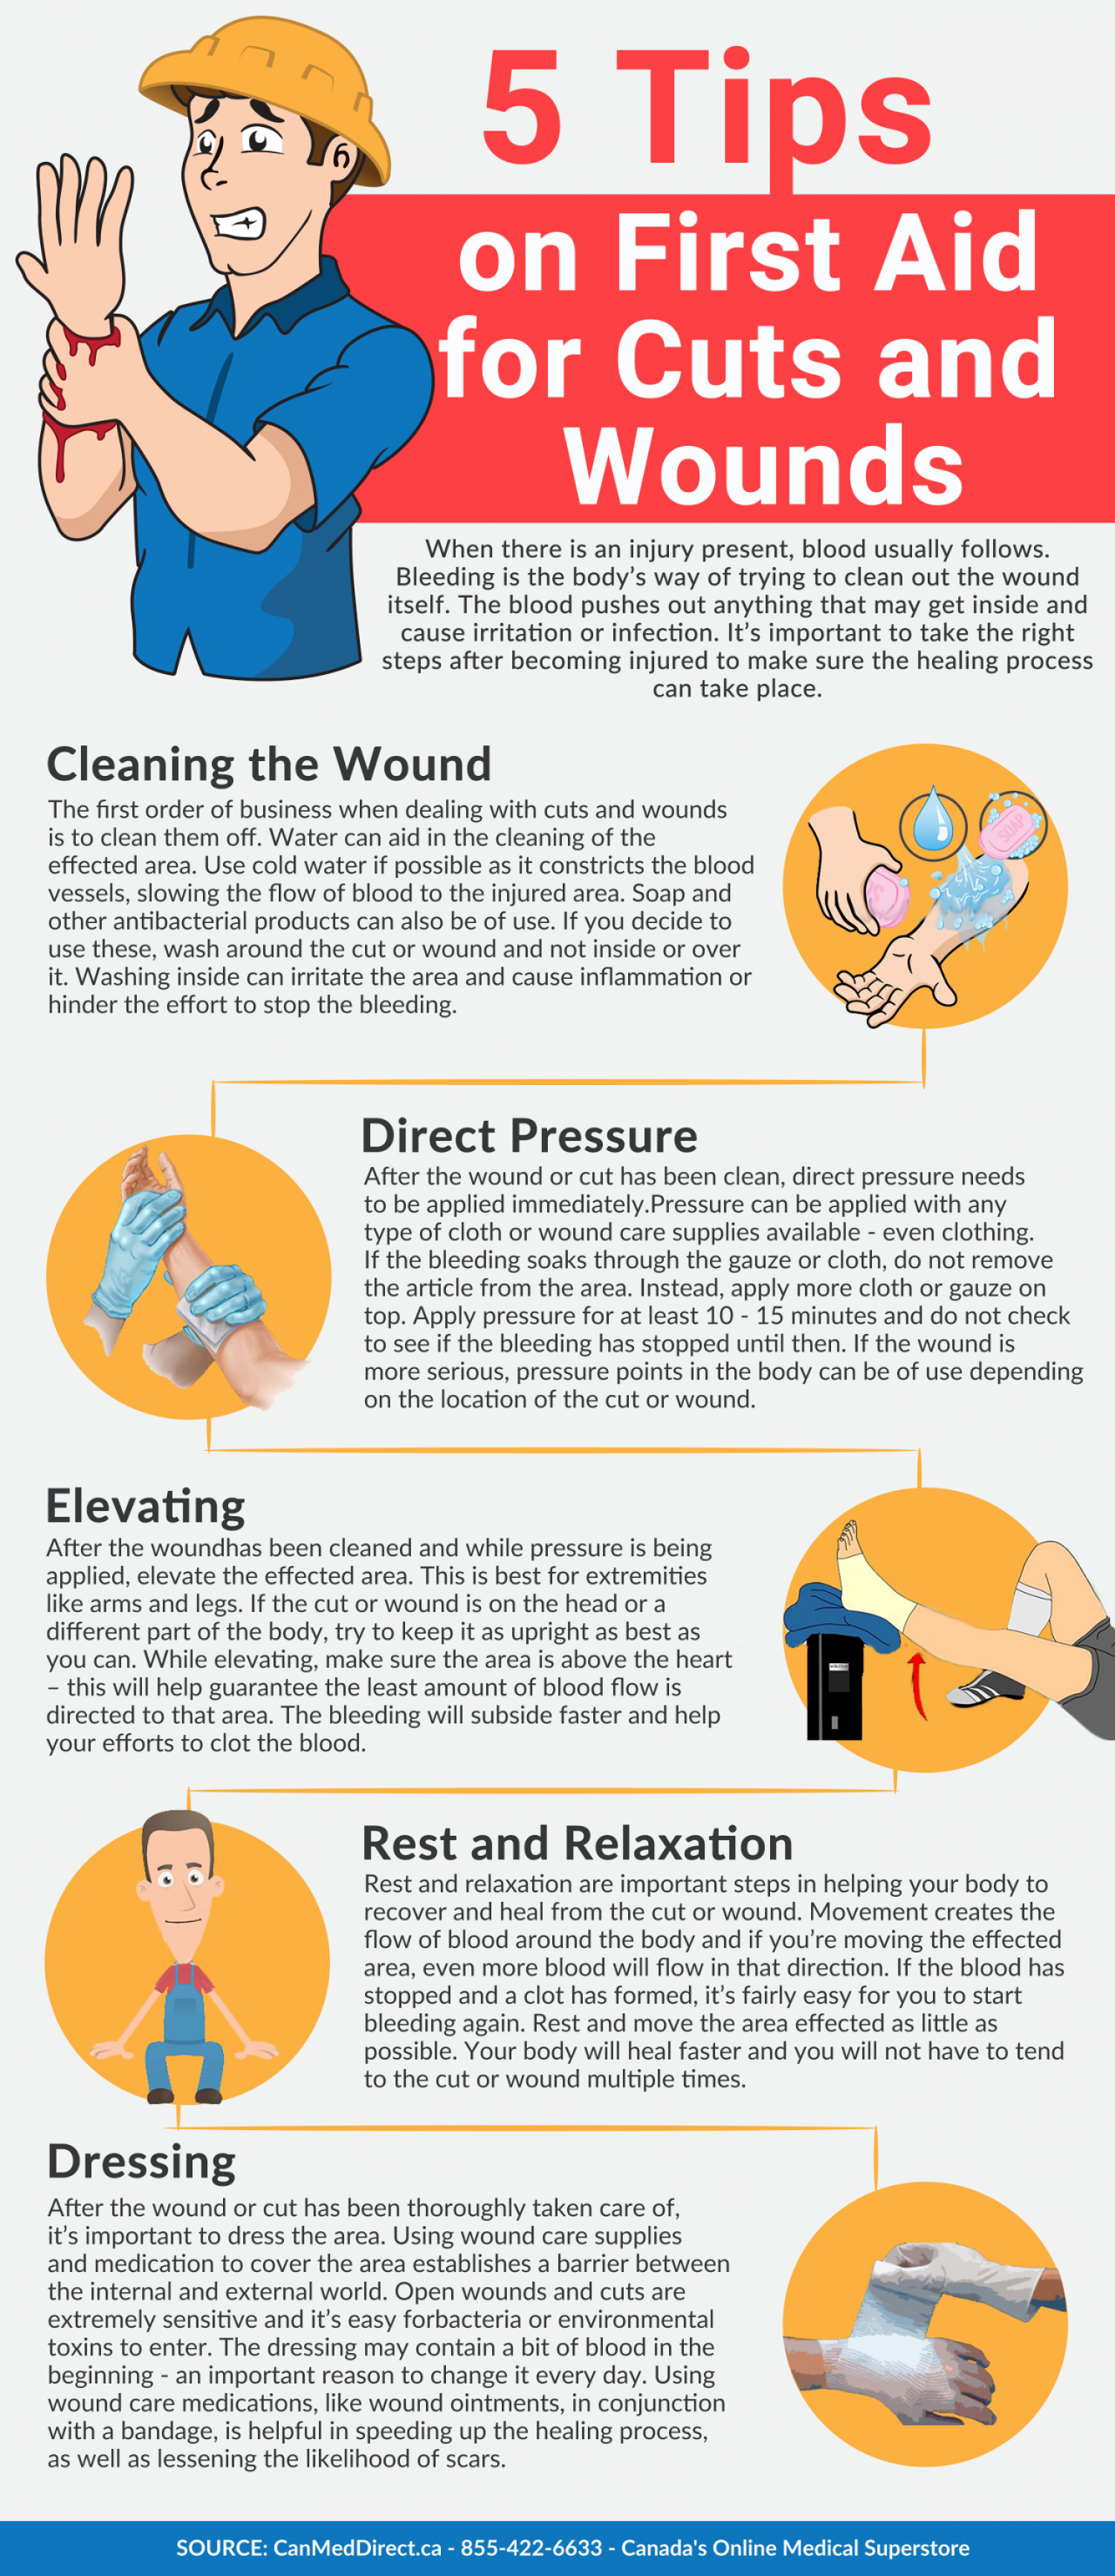 5 Tips on First Aid for Cuts and Wounds | Visual.ly